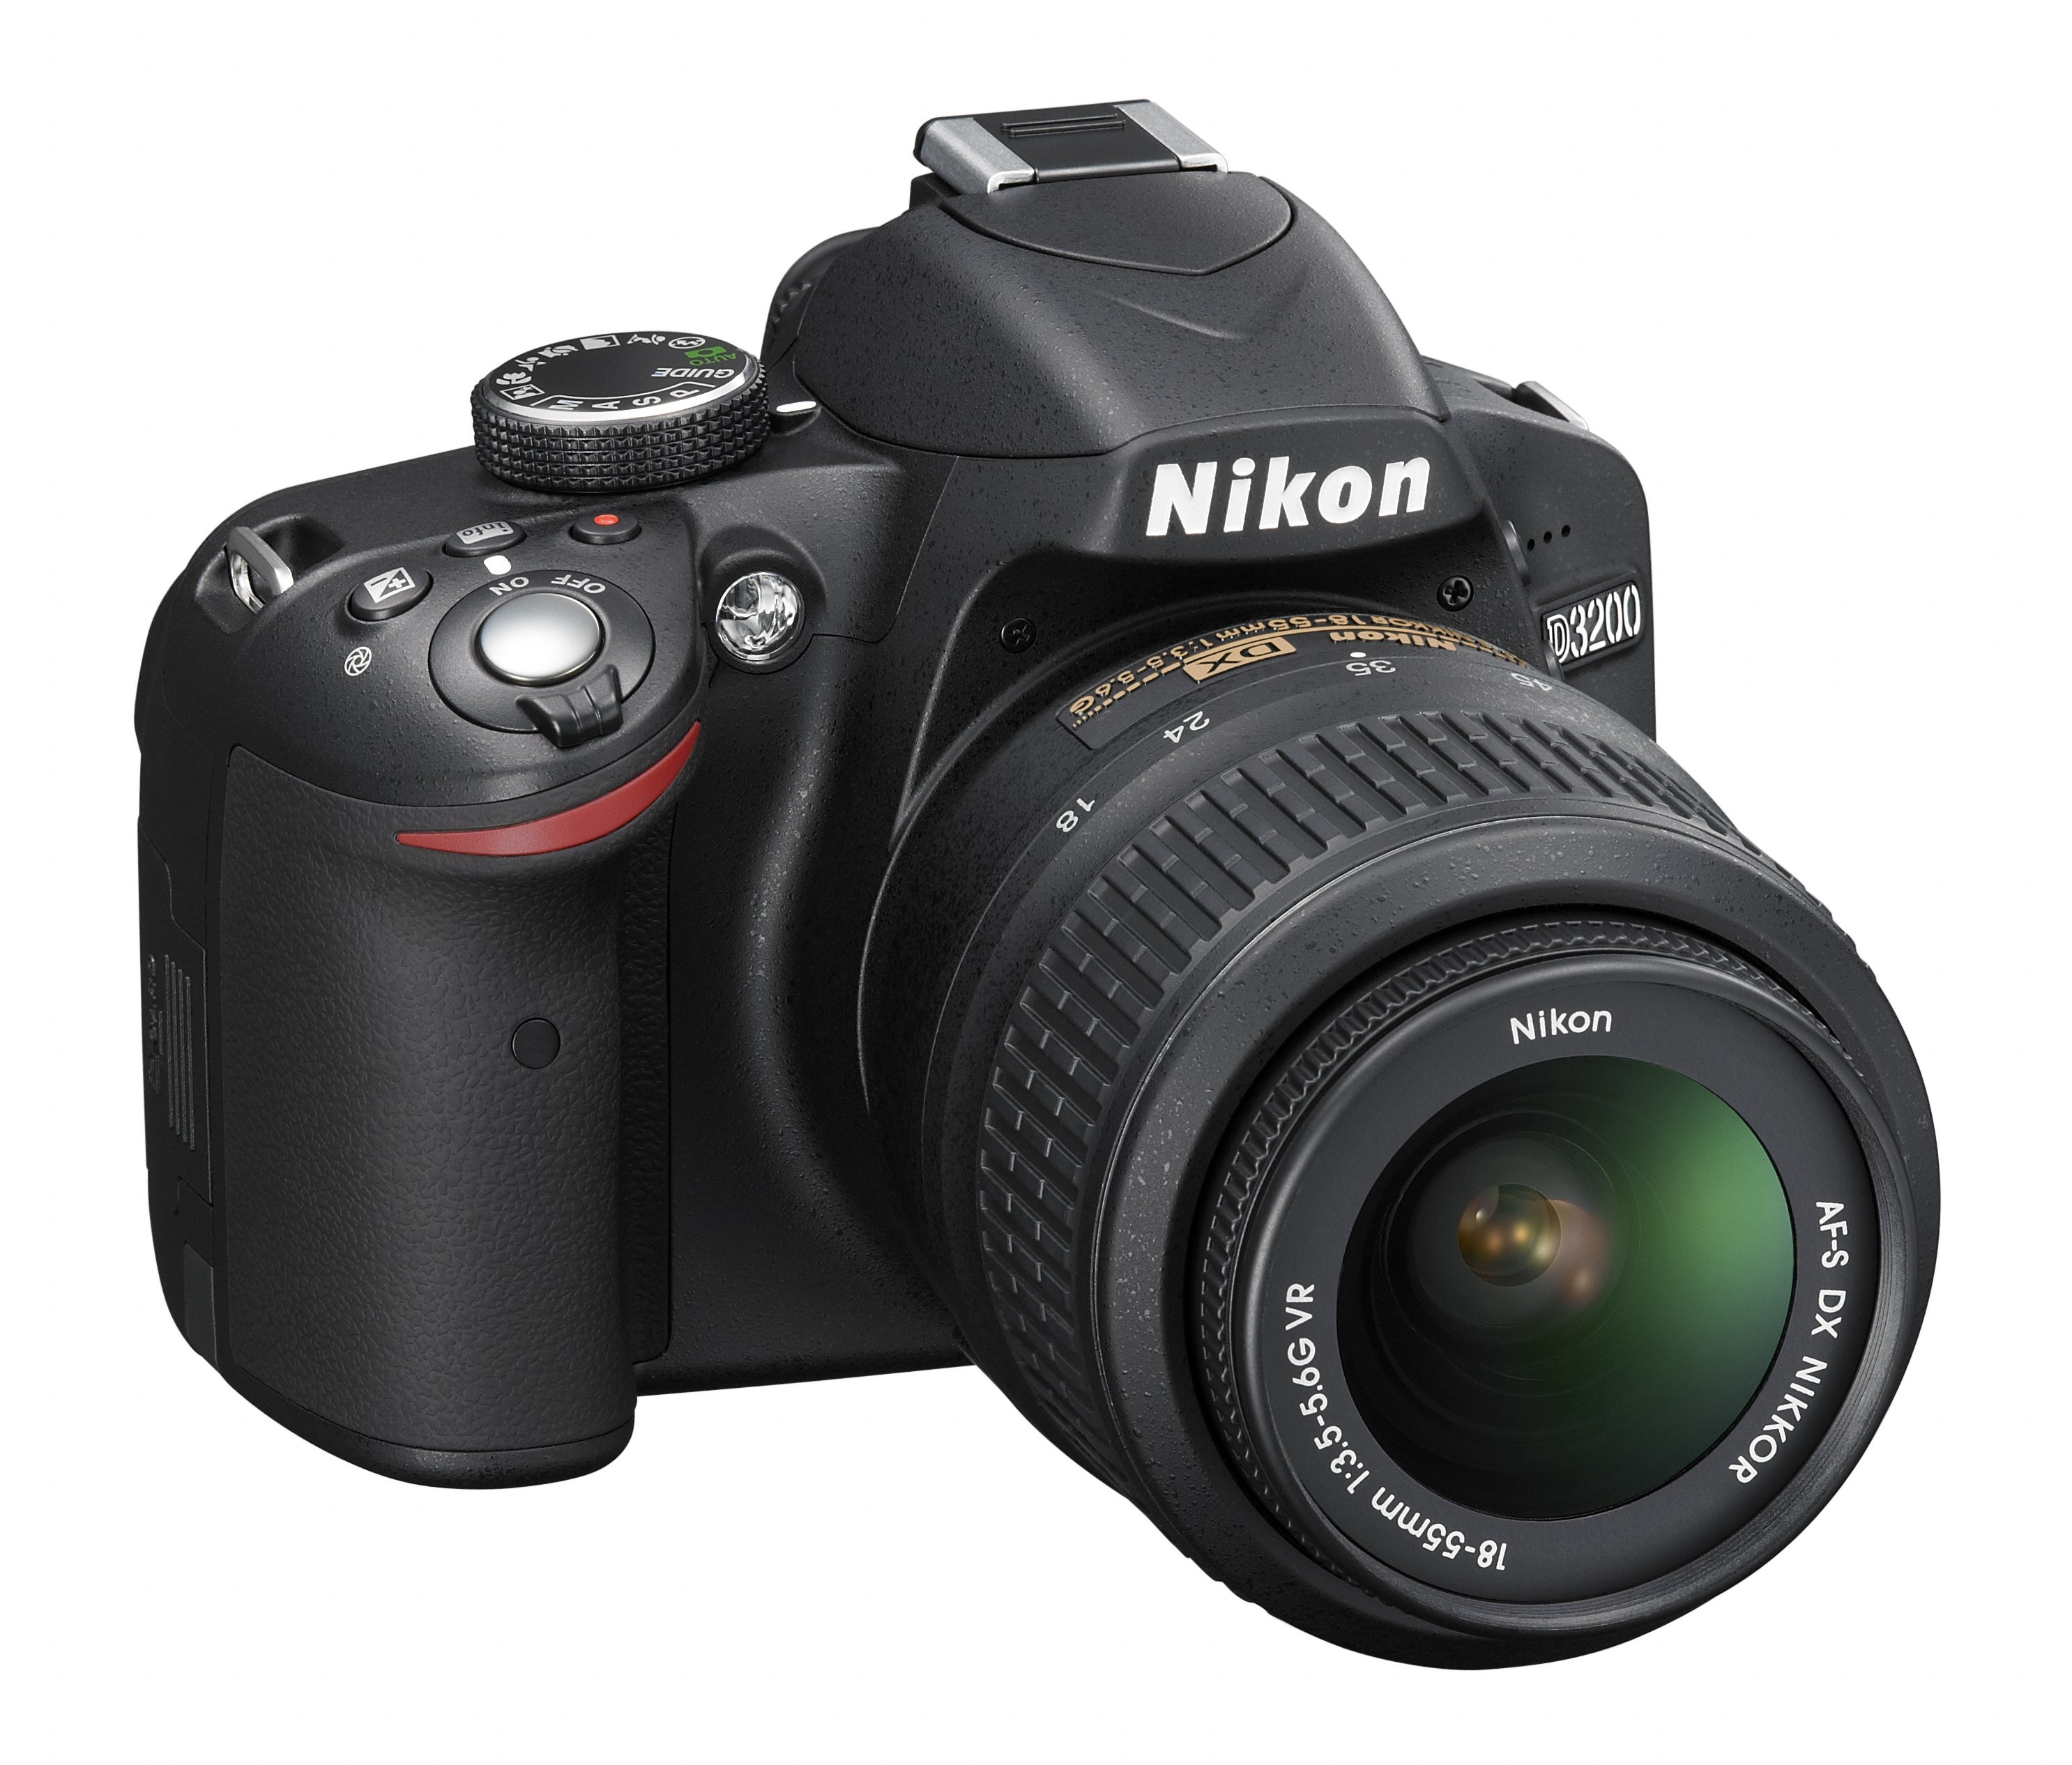 nikon announces the powerful d3200 dslr camera and nikkor